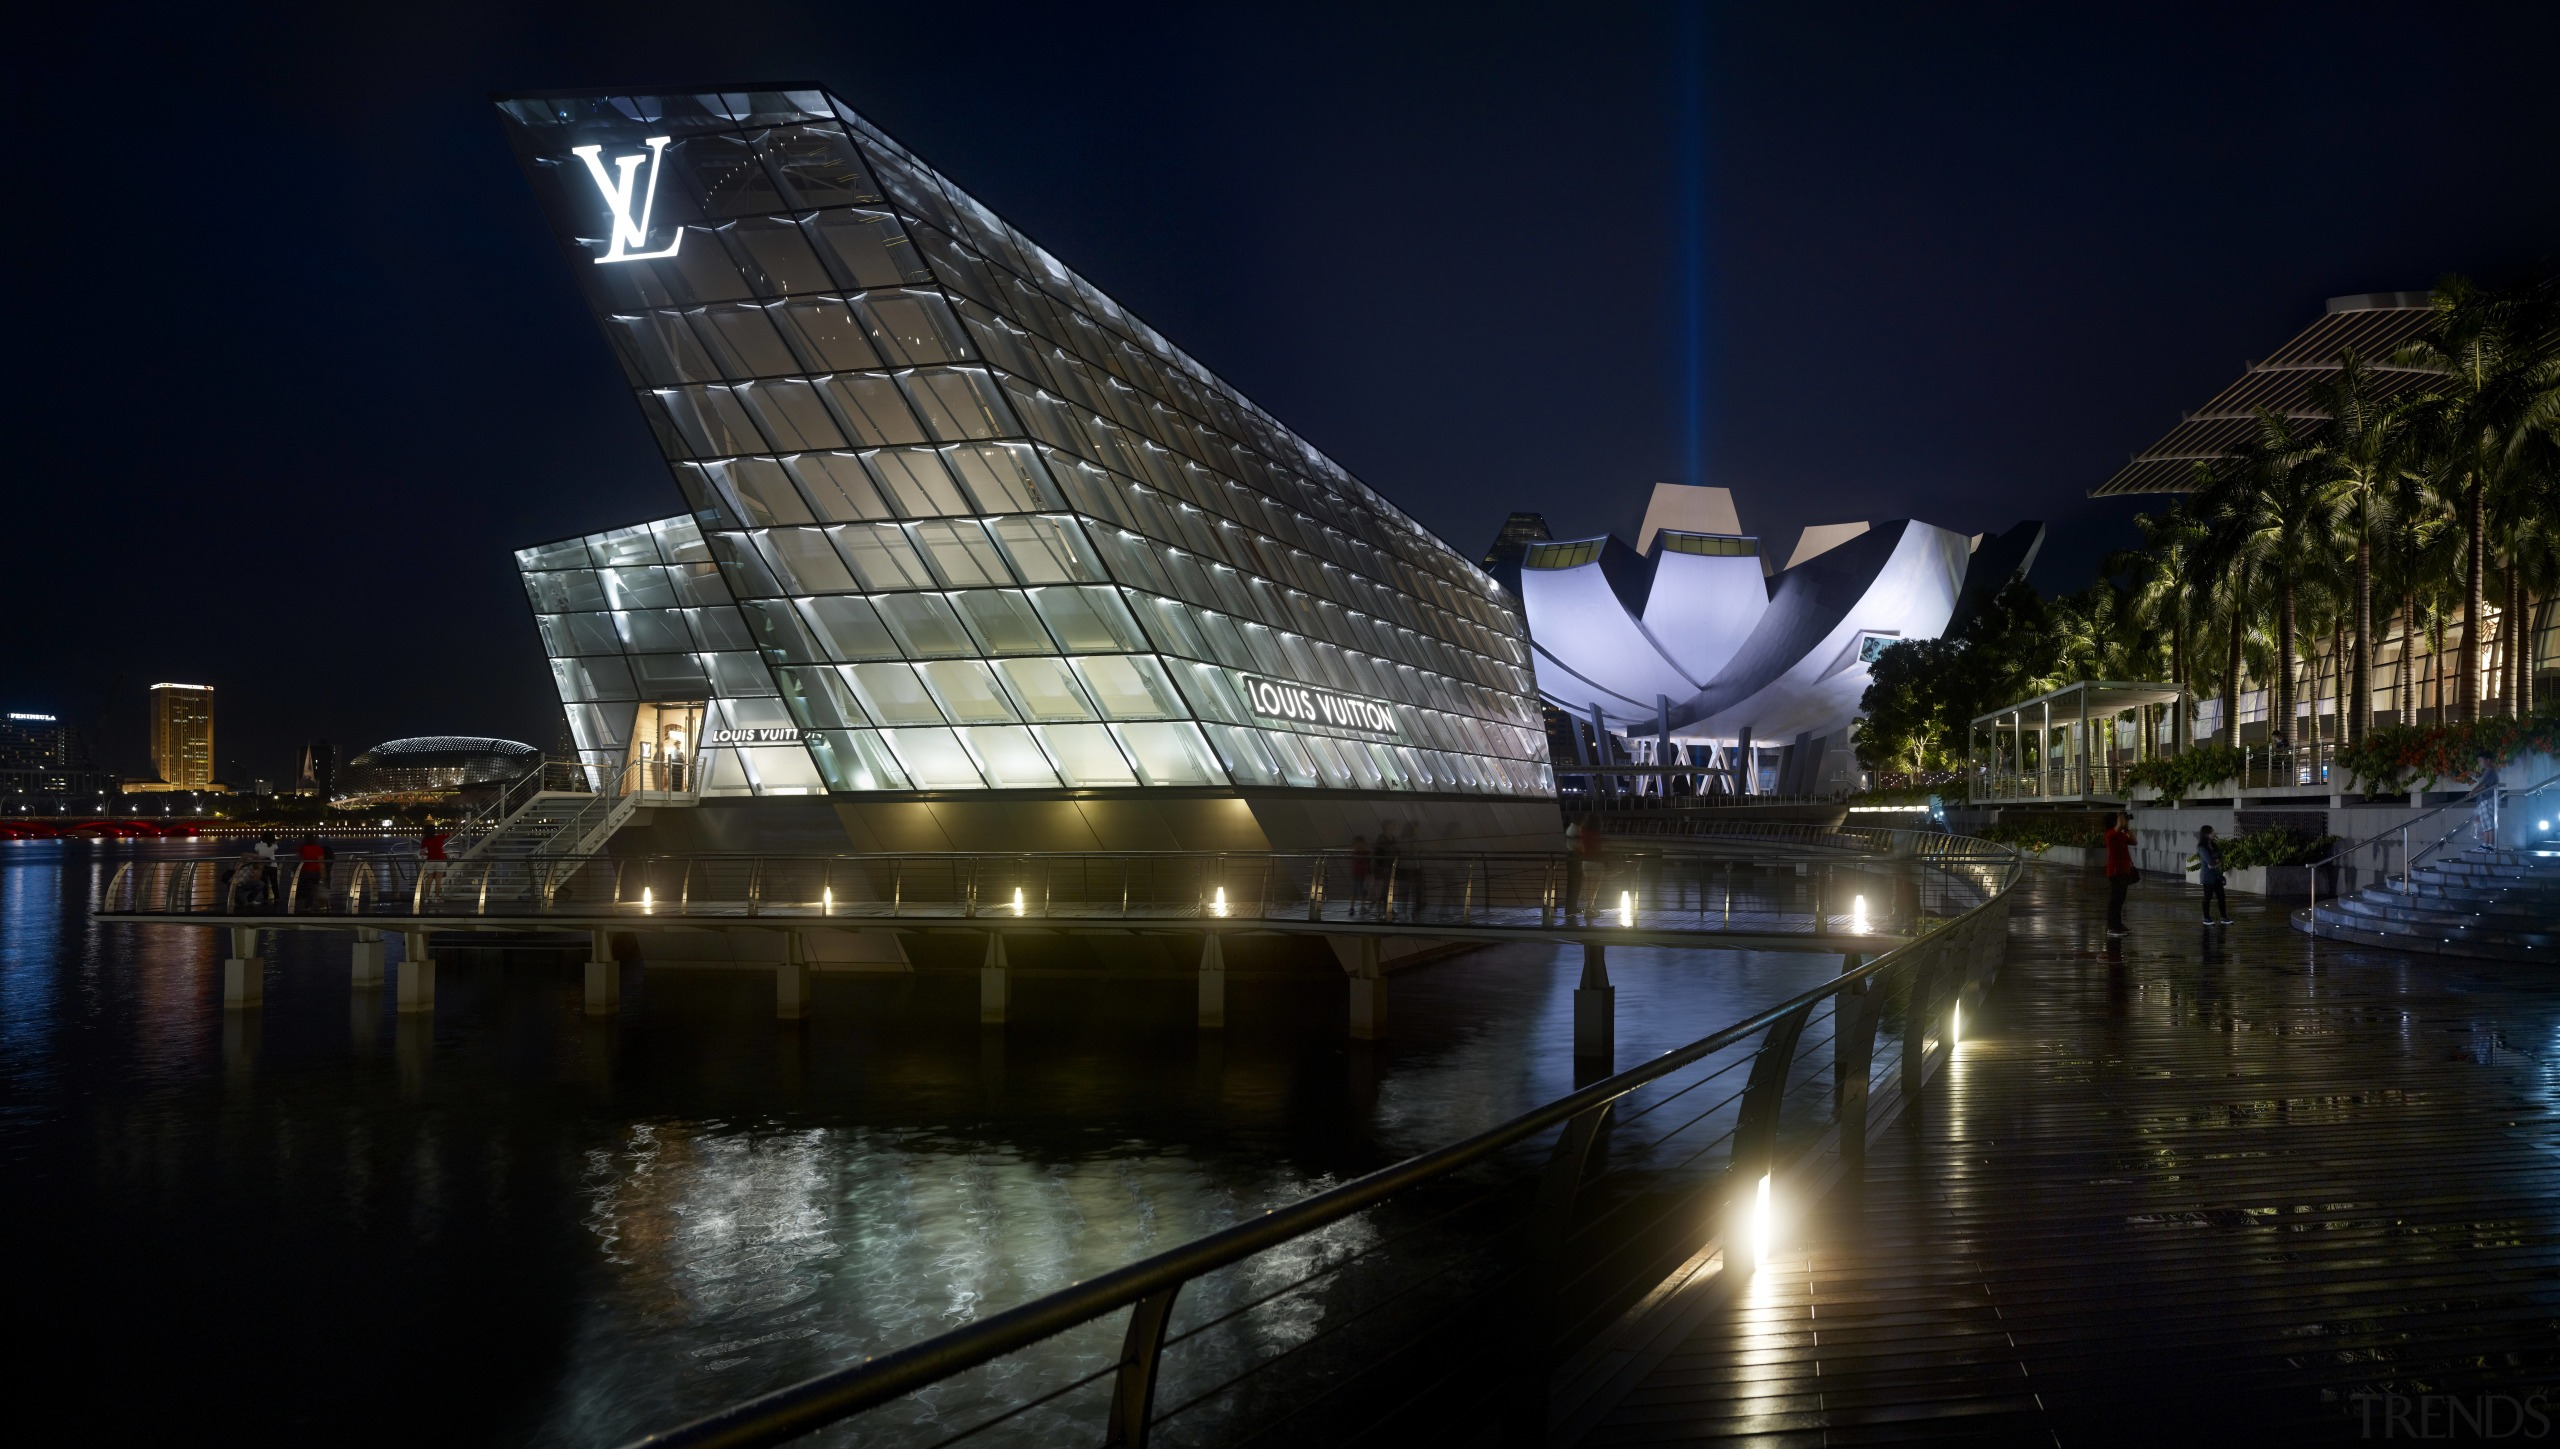 Like the prow of a ship, the illuminated architecture, building, city, cityscape, landmark, light, lighting, metropolis, metropolitan area, night, reflection, sky, structure, tourist attraction, water, black